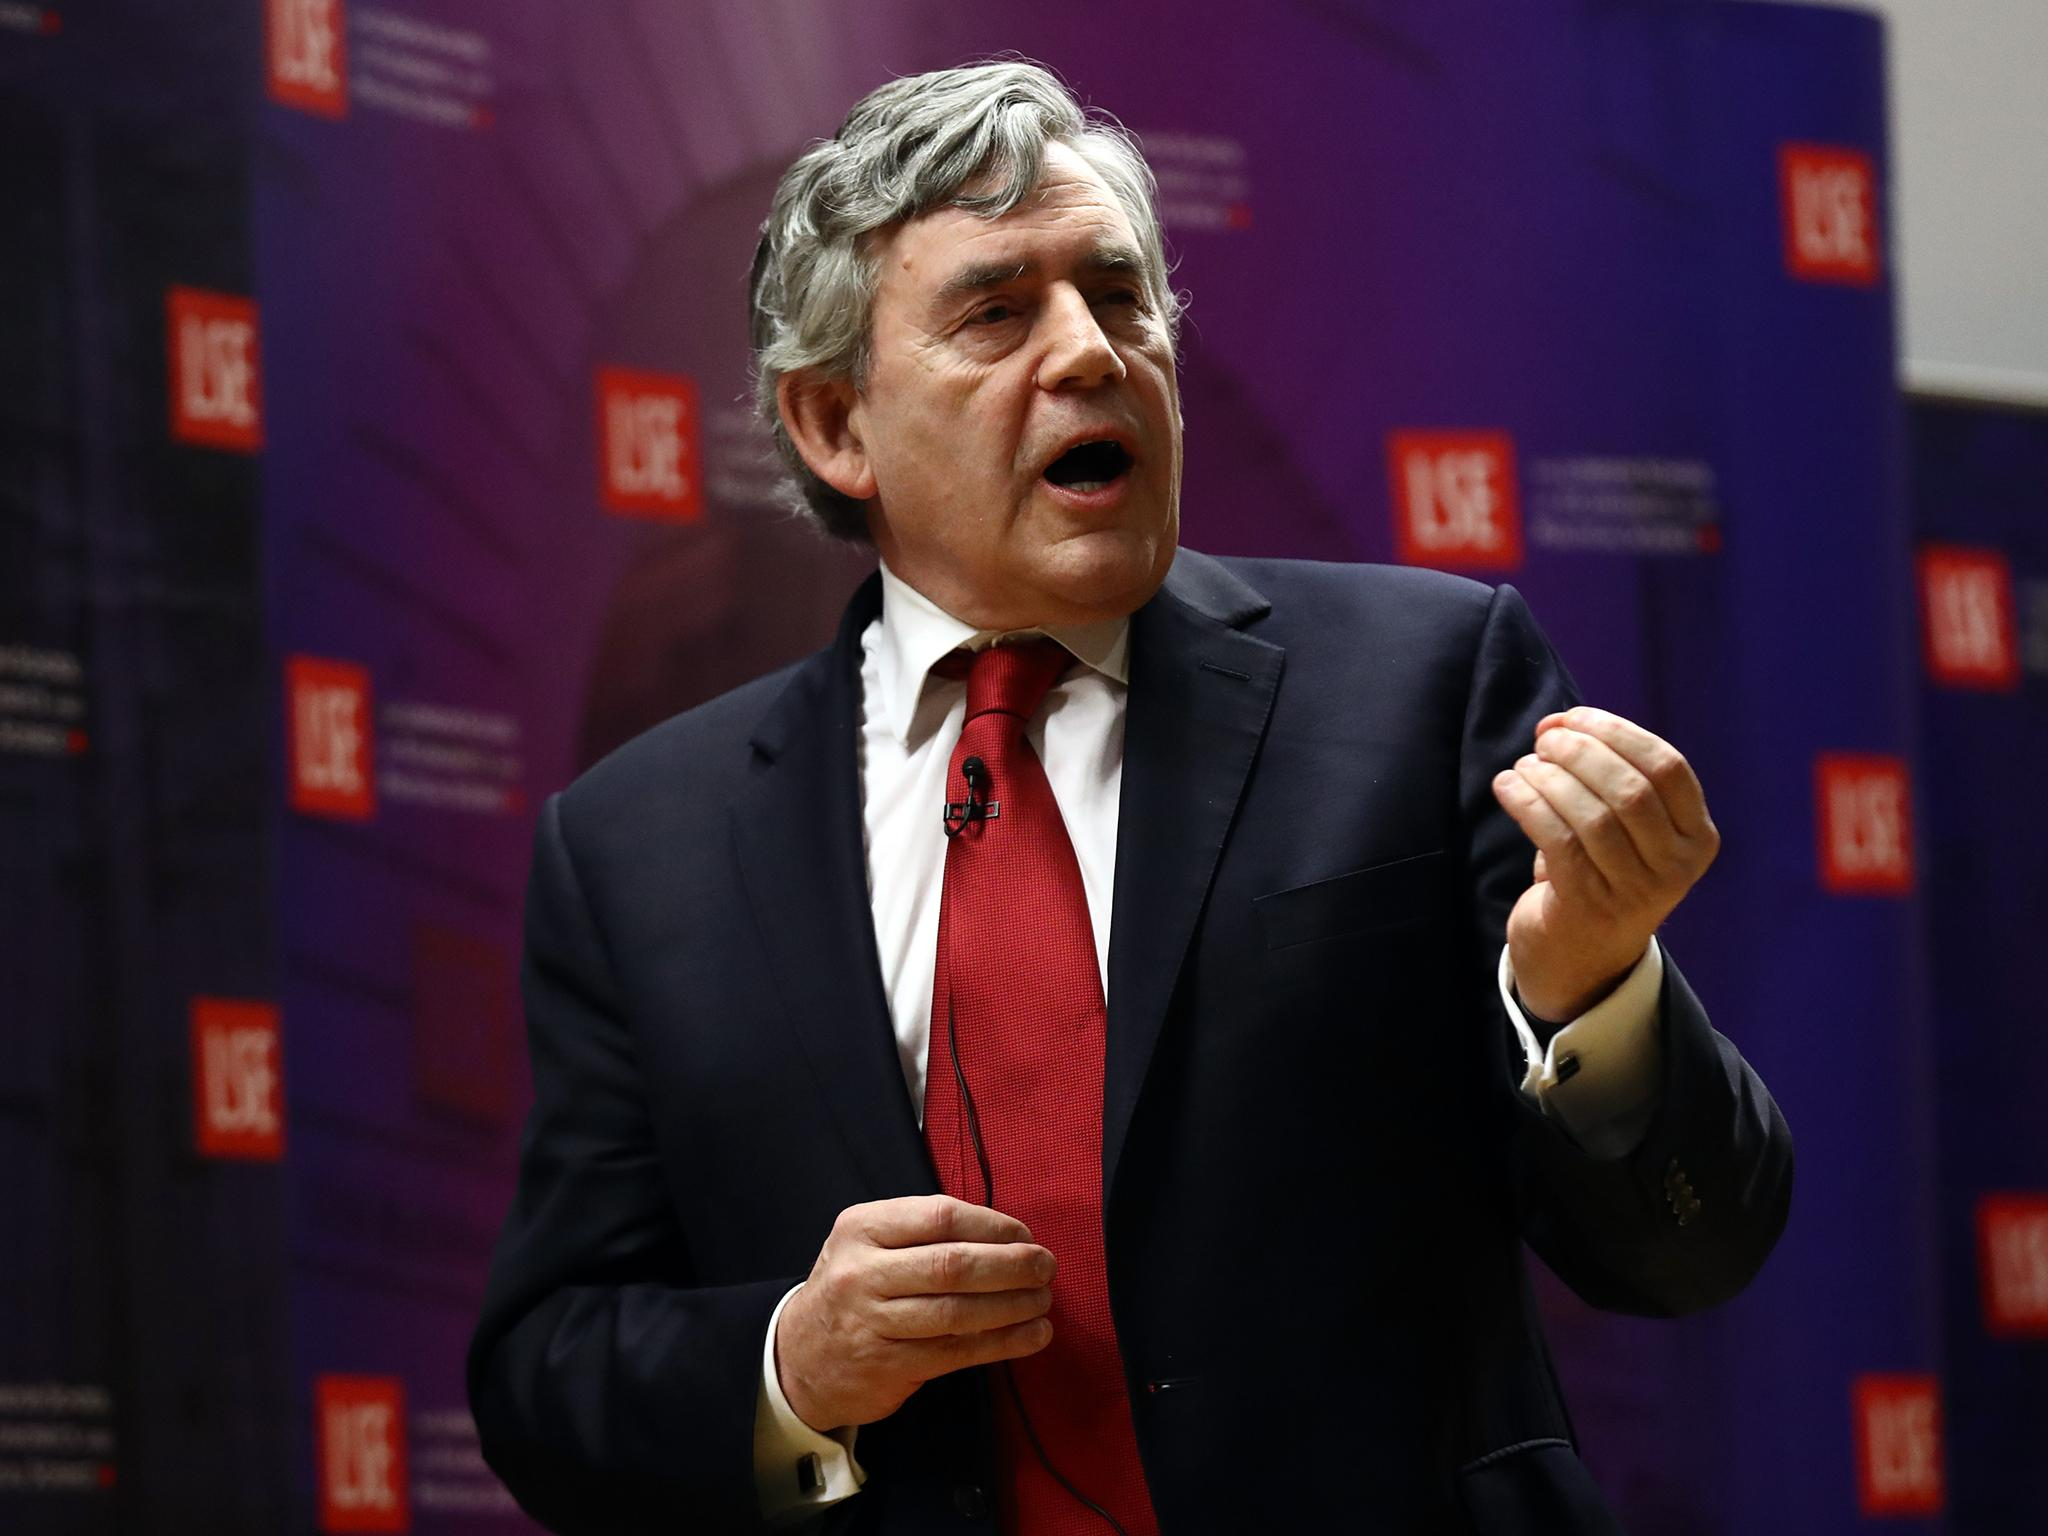 The world is sleepwalking into a new financial crisis, warns UK's former PM Gordon Brown